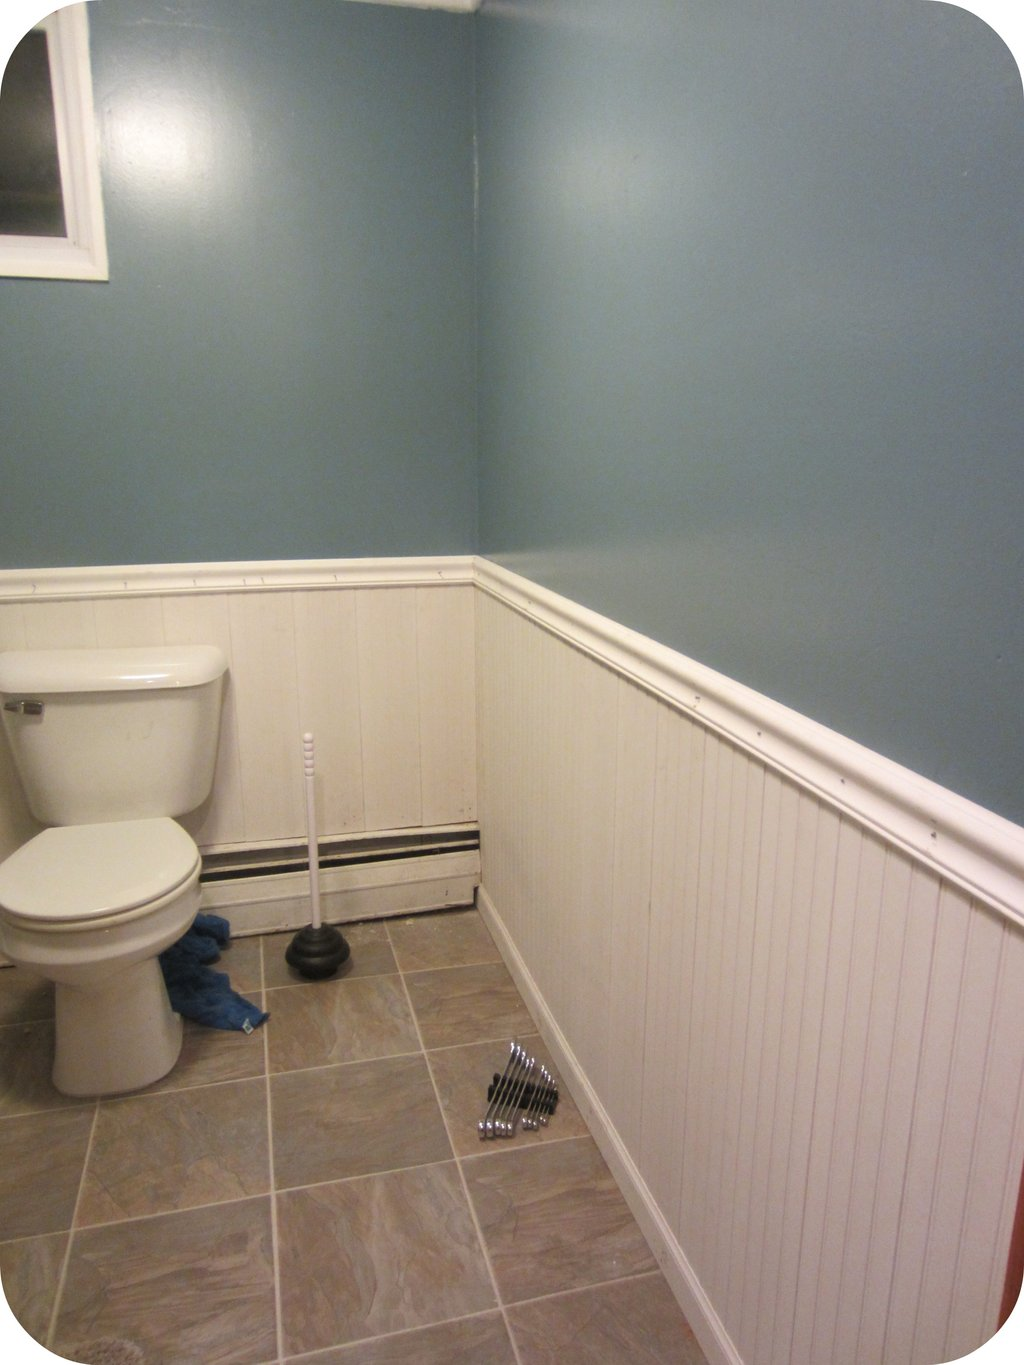 Ultimate Wainscoting Shoe Molding Rend Hgtvcom How To Build A Wooden Bathtub Stool